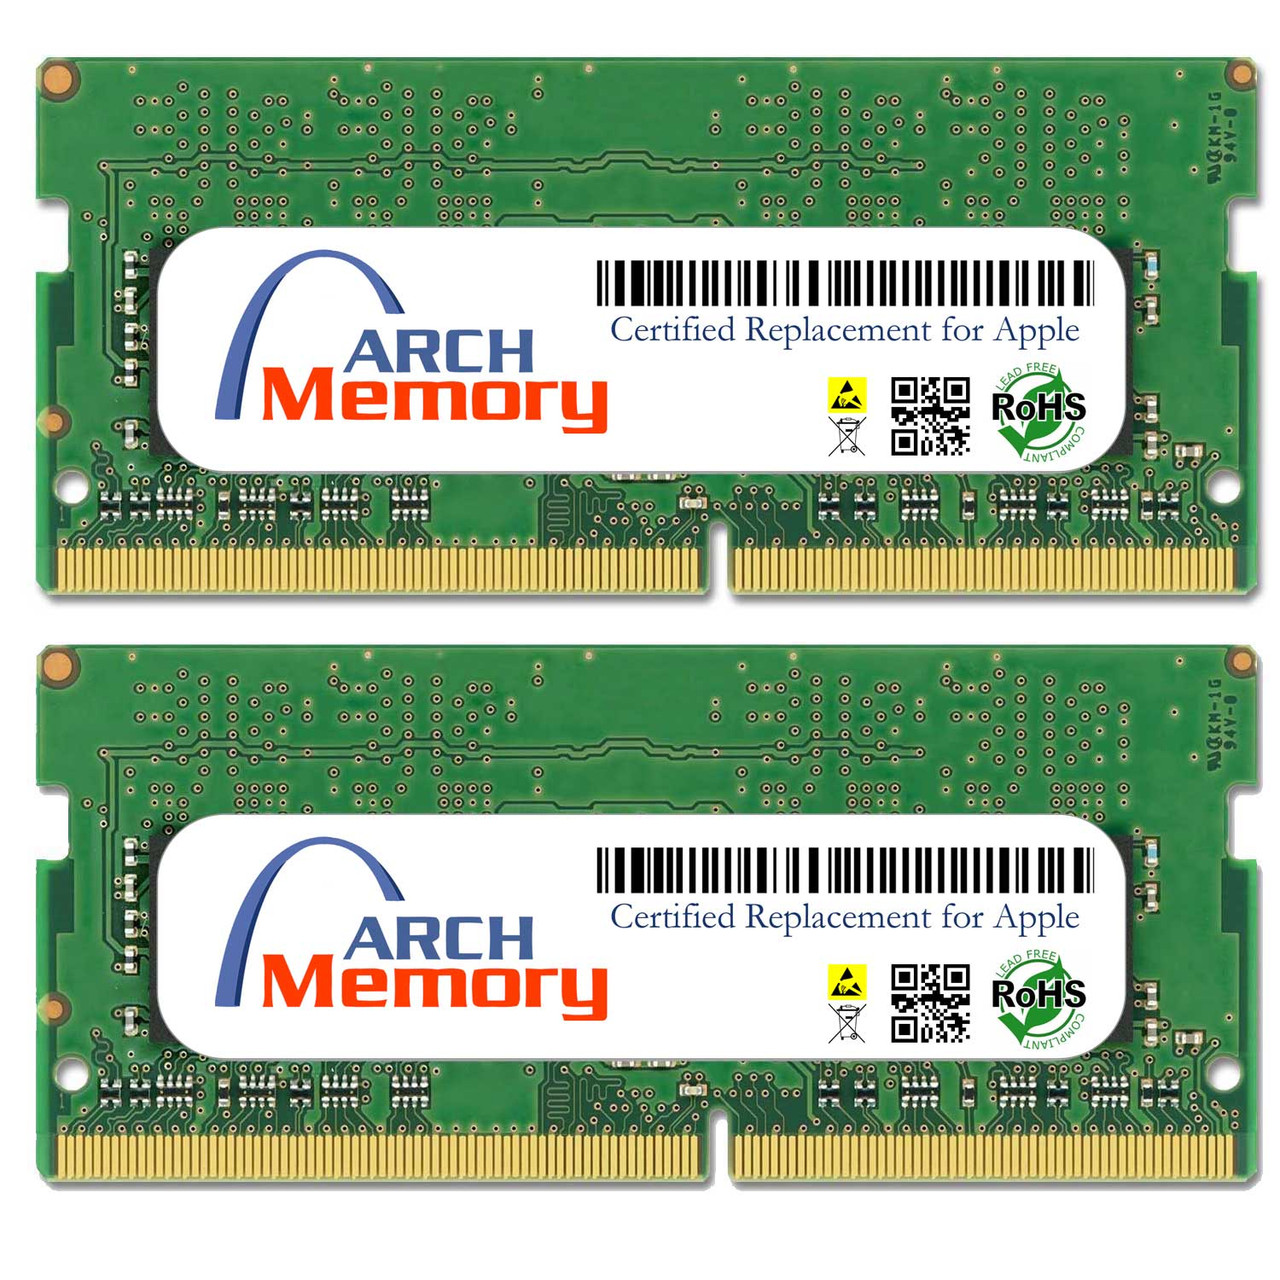 Certified for Apple Memory